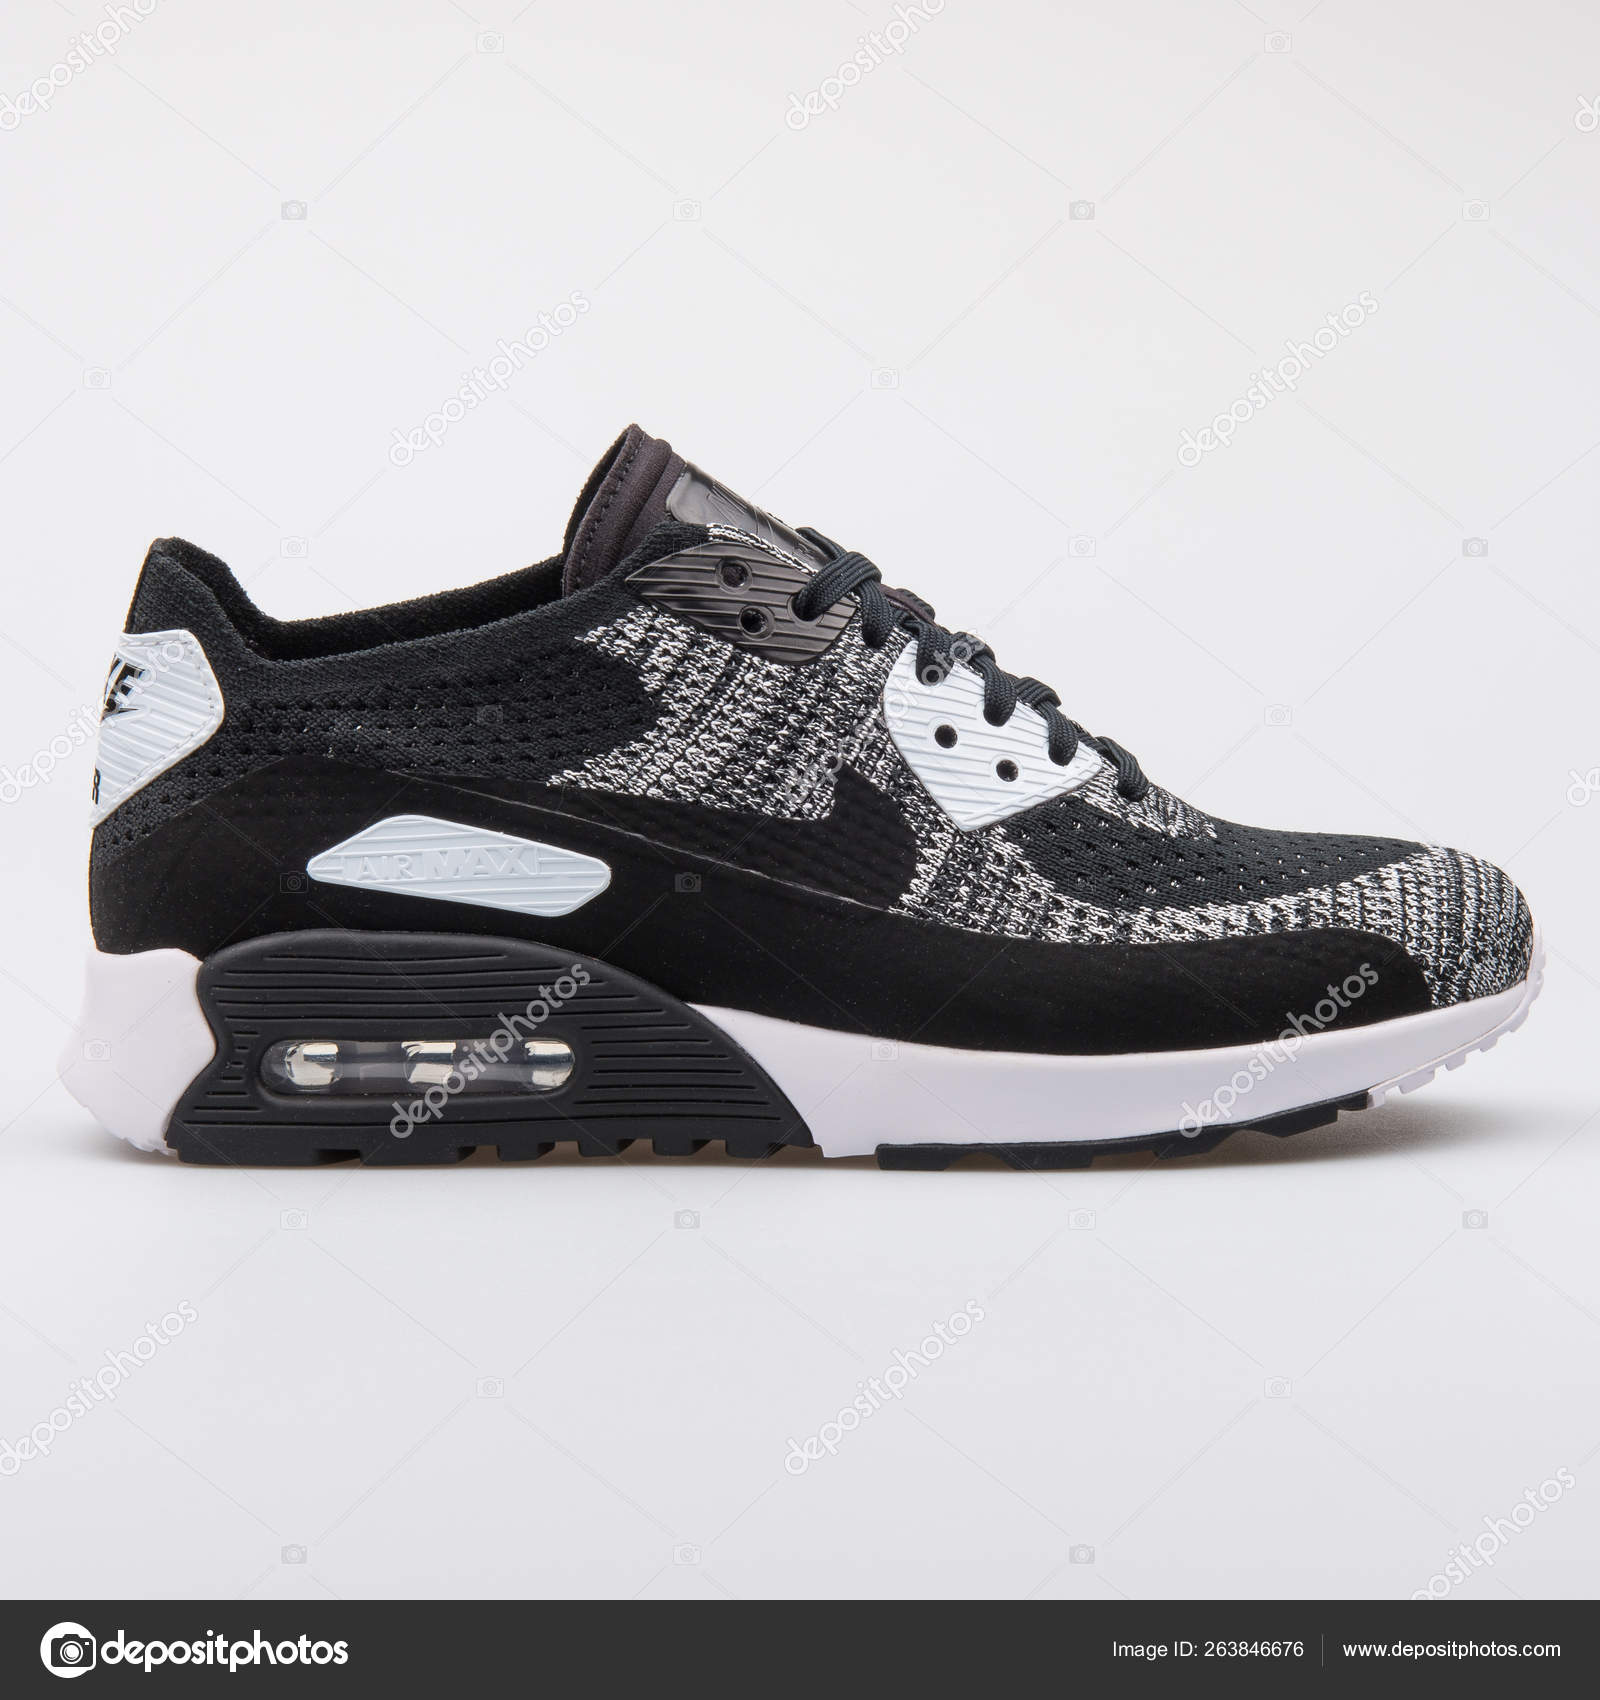 Perspicaz Rama Planta de semillero  Nike Air Max 90 Ultra 2.0 Flyknit black and white sneaker – Stock Editorial  Photo © xMarshallfilms #263846676